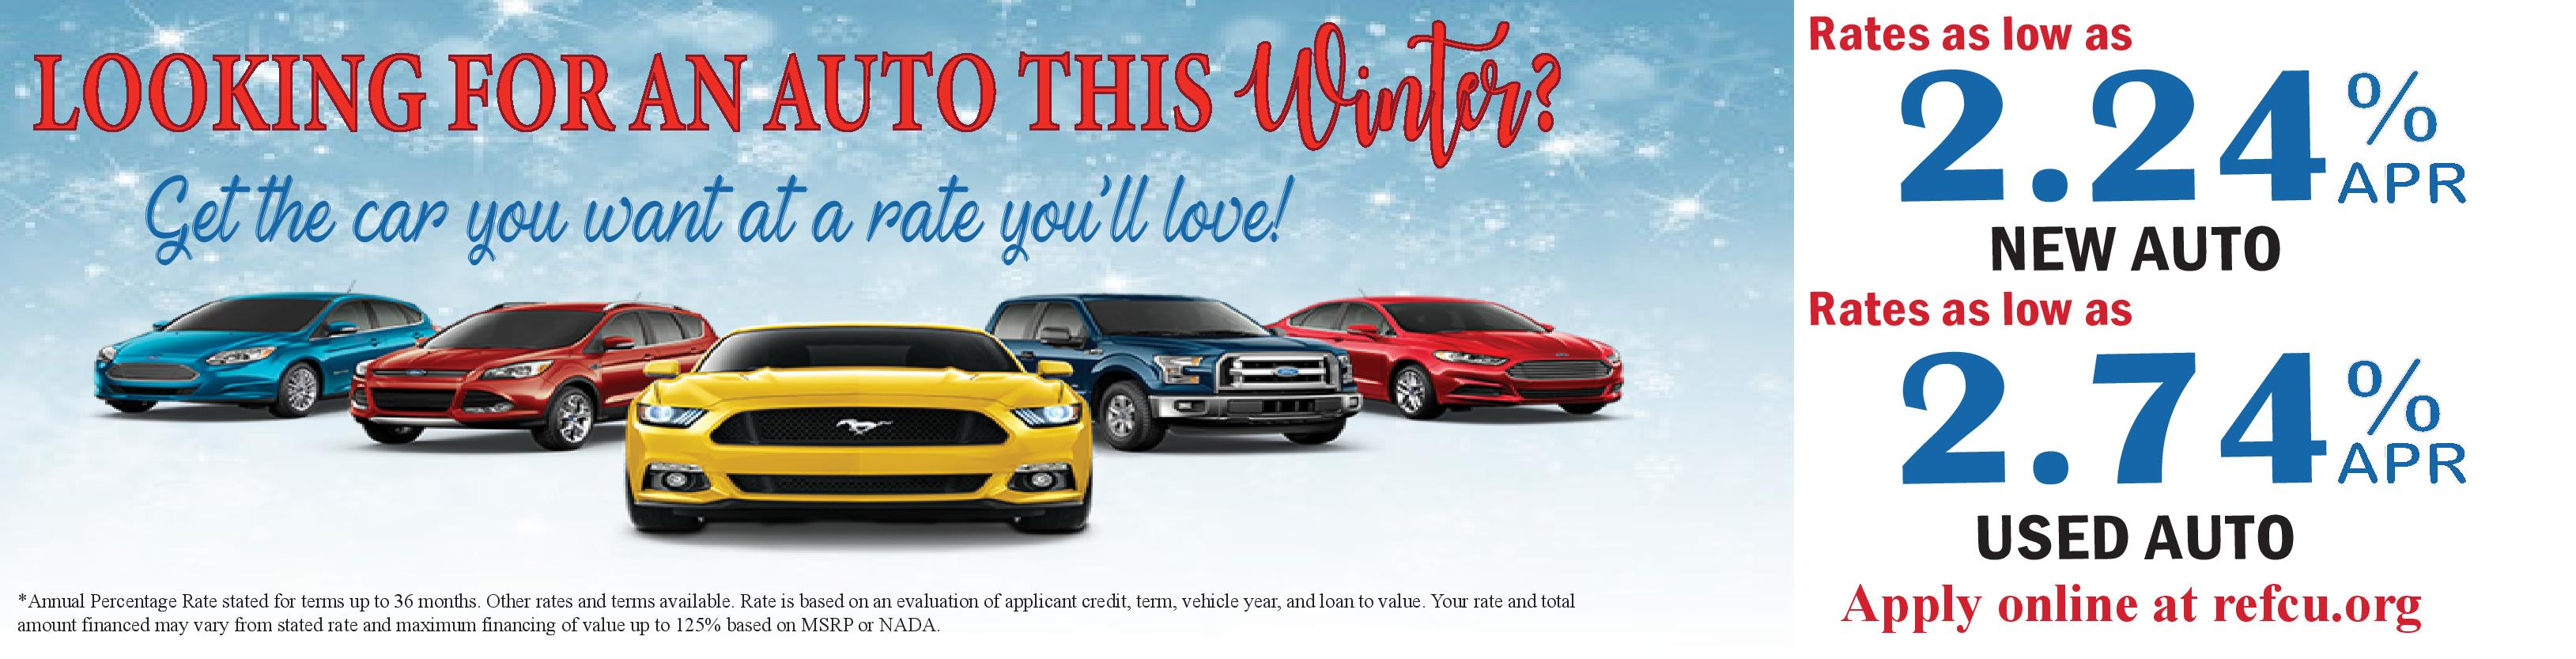 Looking for a new or used vehicle this winter? rates as low as 2.24%